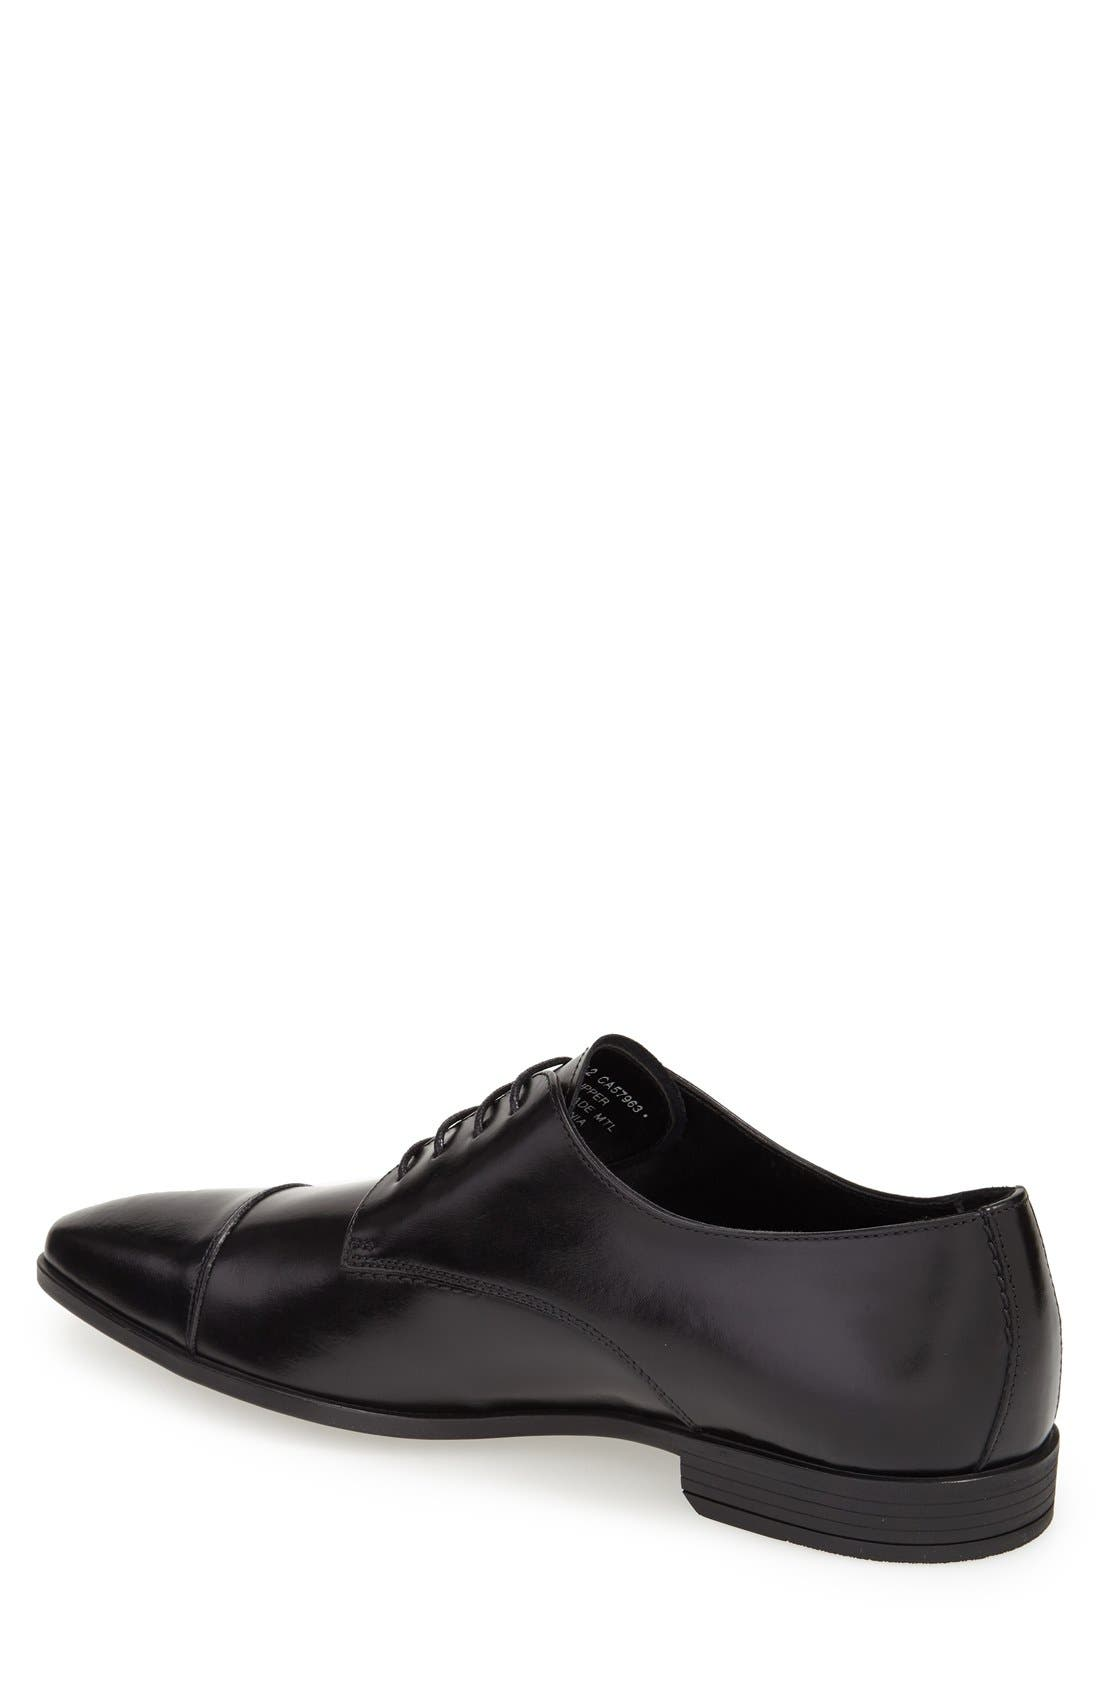 Alternate Image 2  - The Rail 'Stark' Cap Toe Derby (Men)